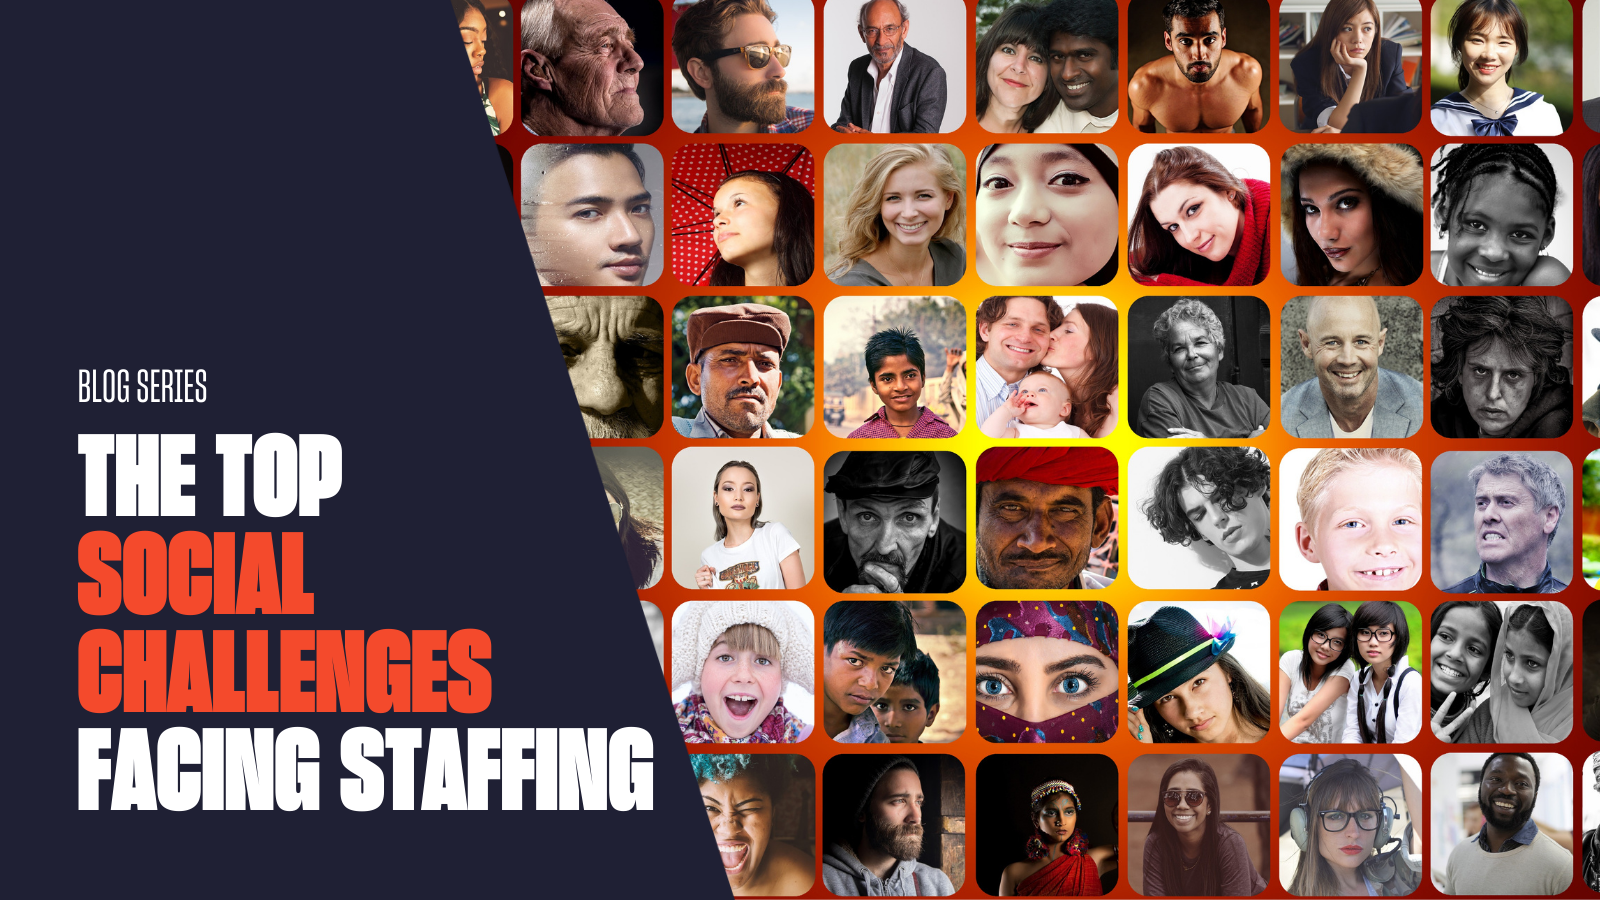 Diversity, Equality, and Inclusion: Top Social Challenges Facing the Staffing Industry Part 2